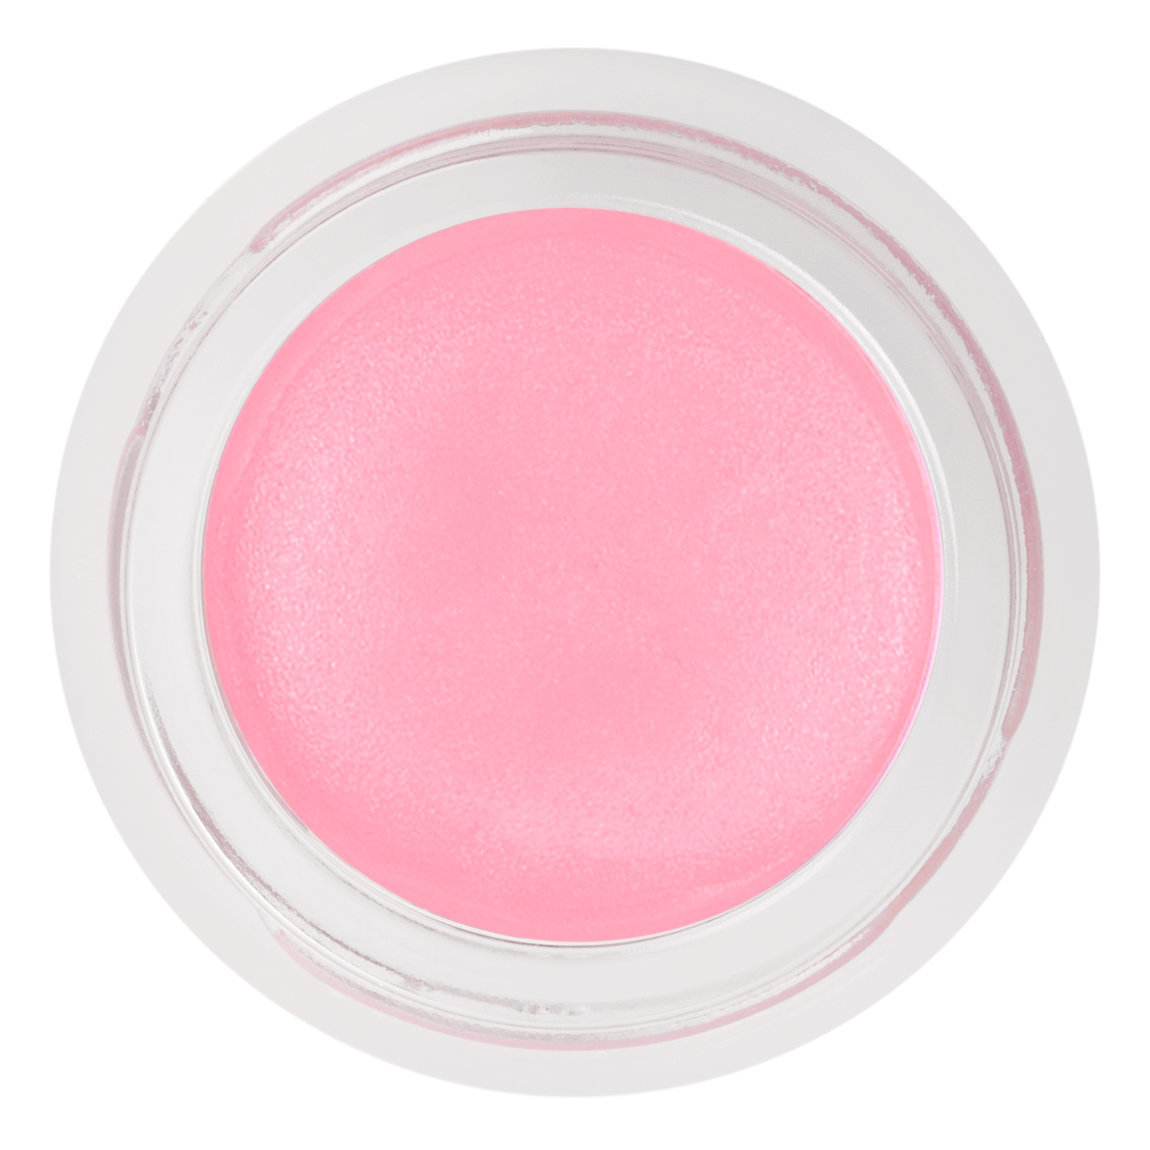 rms beauty Lip2Cheek Demure